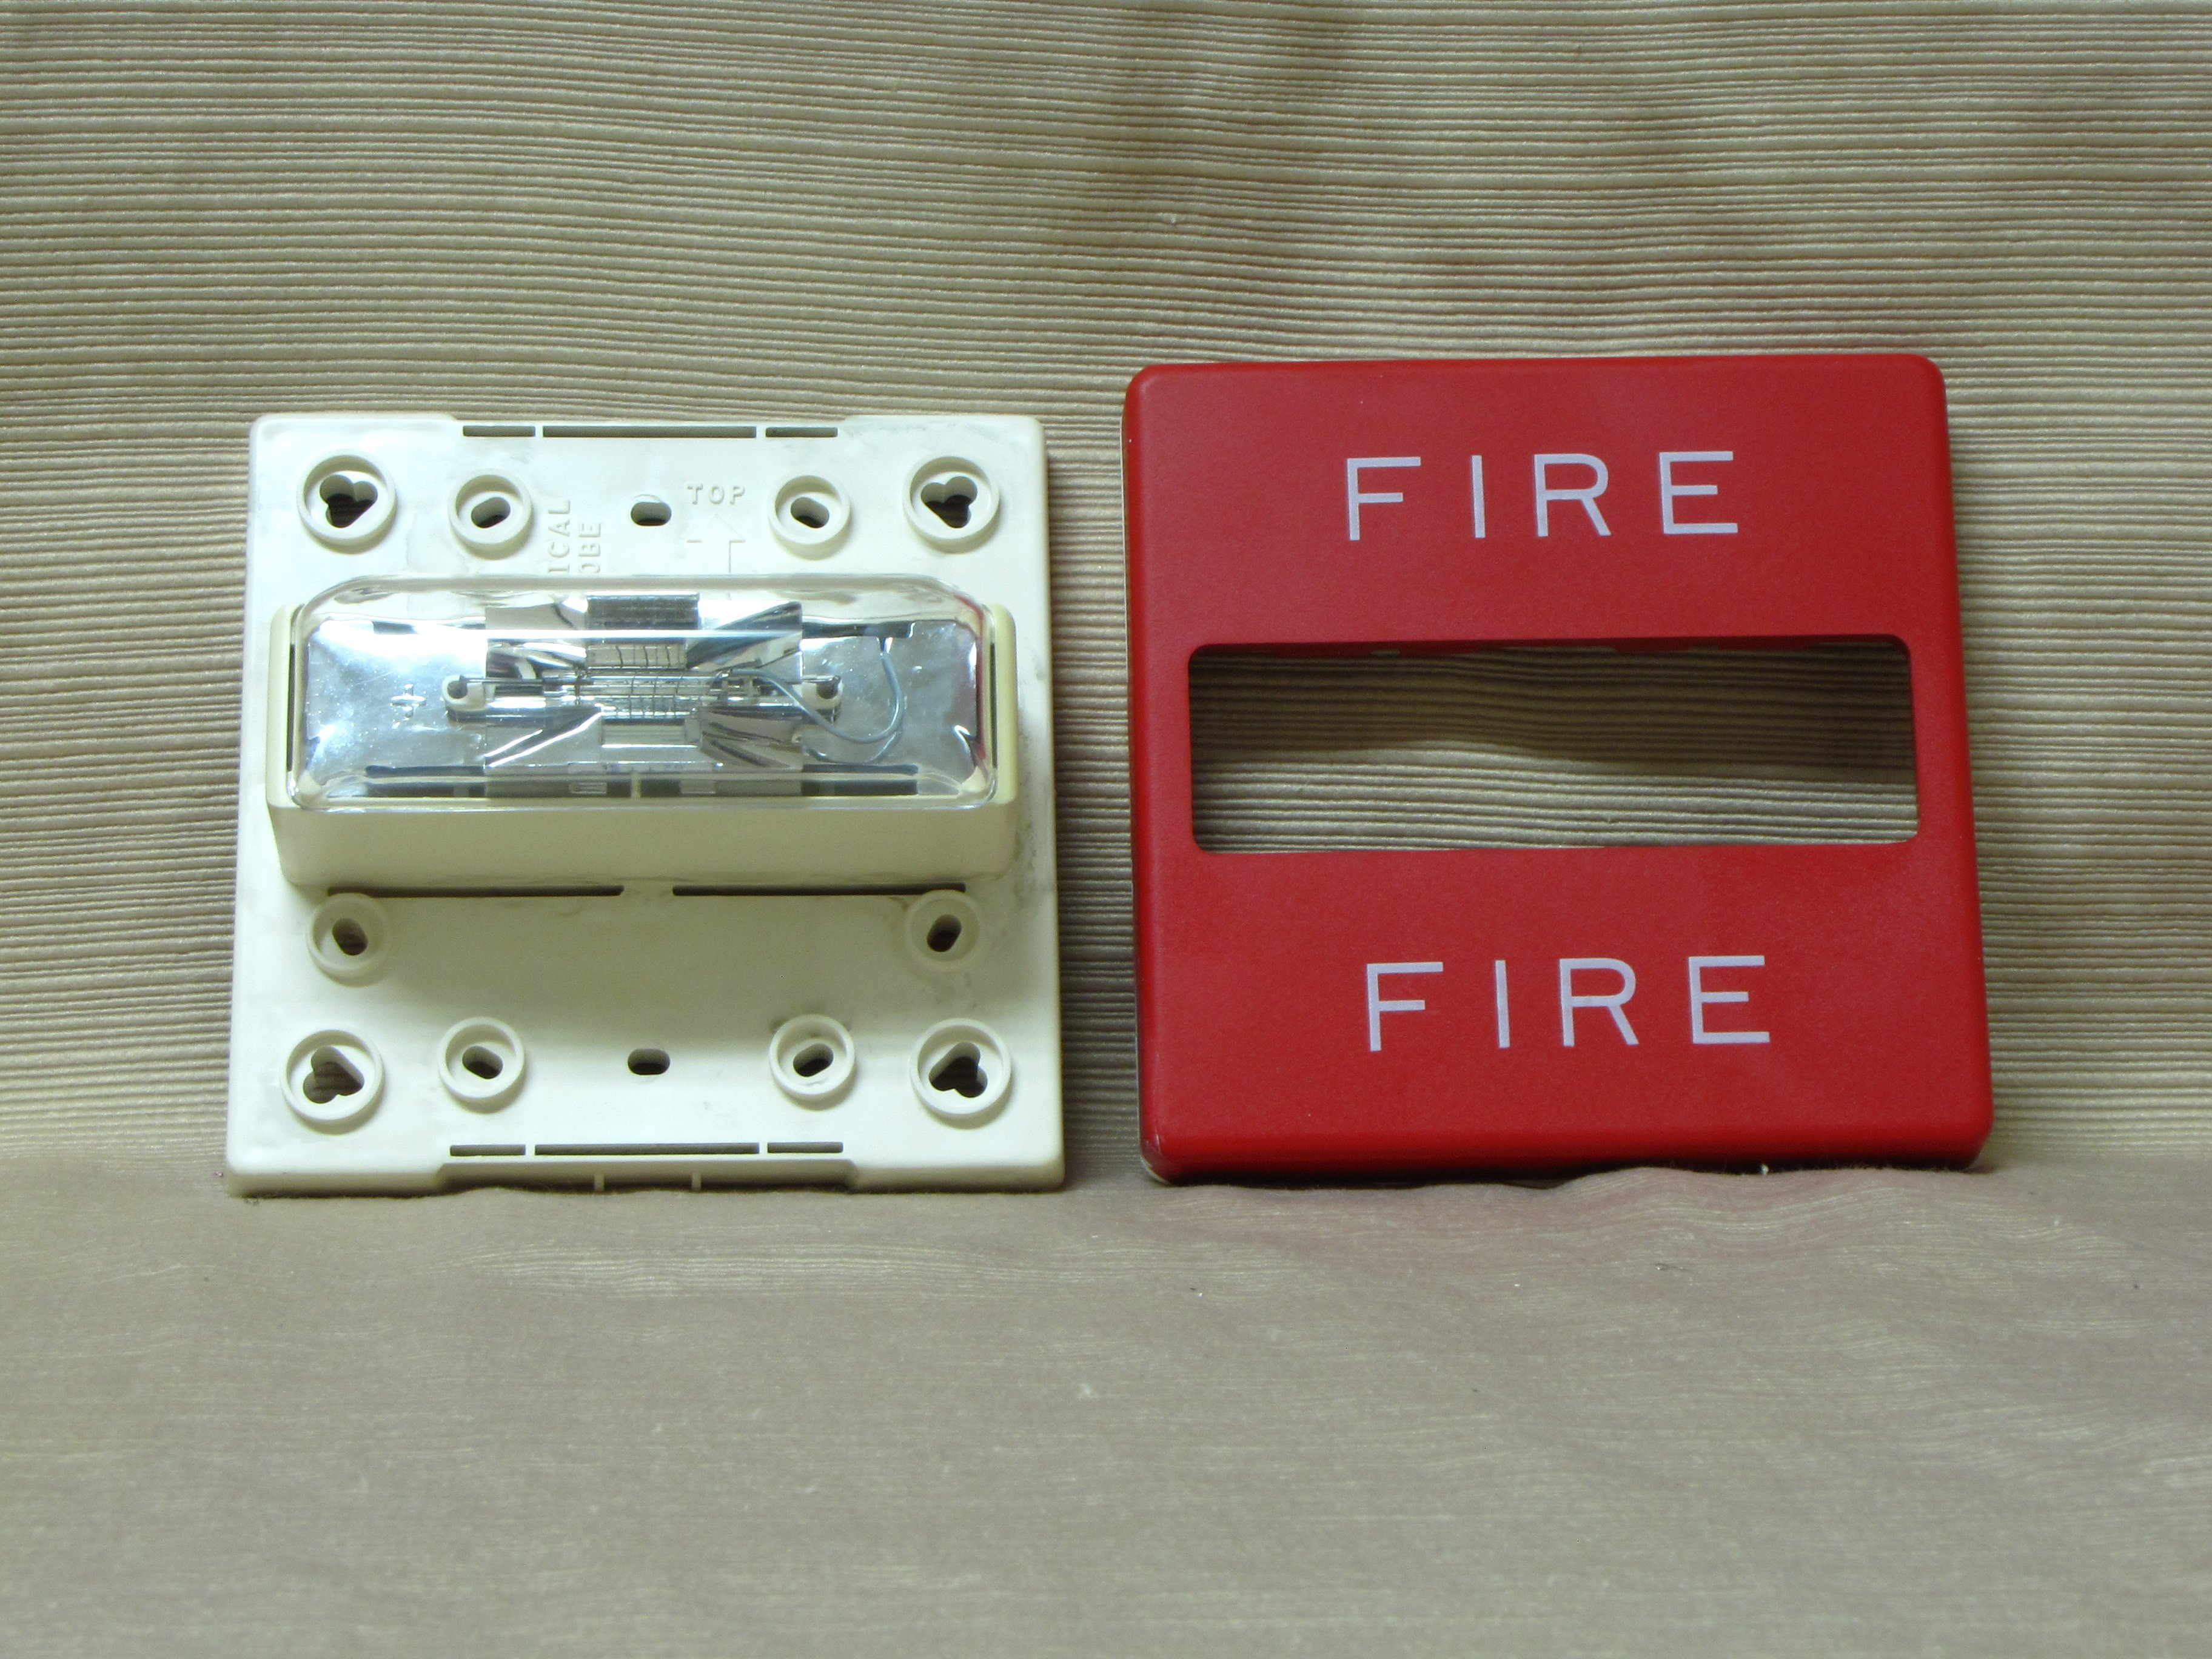 Fire Alarm Plan Symbols furthermore Wheelock Rss 24mcw also New Smoke Detection Placement Requirements Focus On Minimizing Unwanted Alarms additionally 12095250 moreover Wheelock Rss 24mcw. on fire alarm strobe coverage